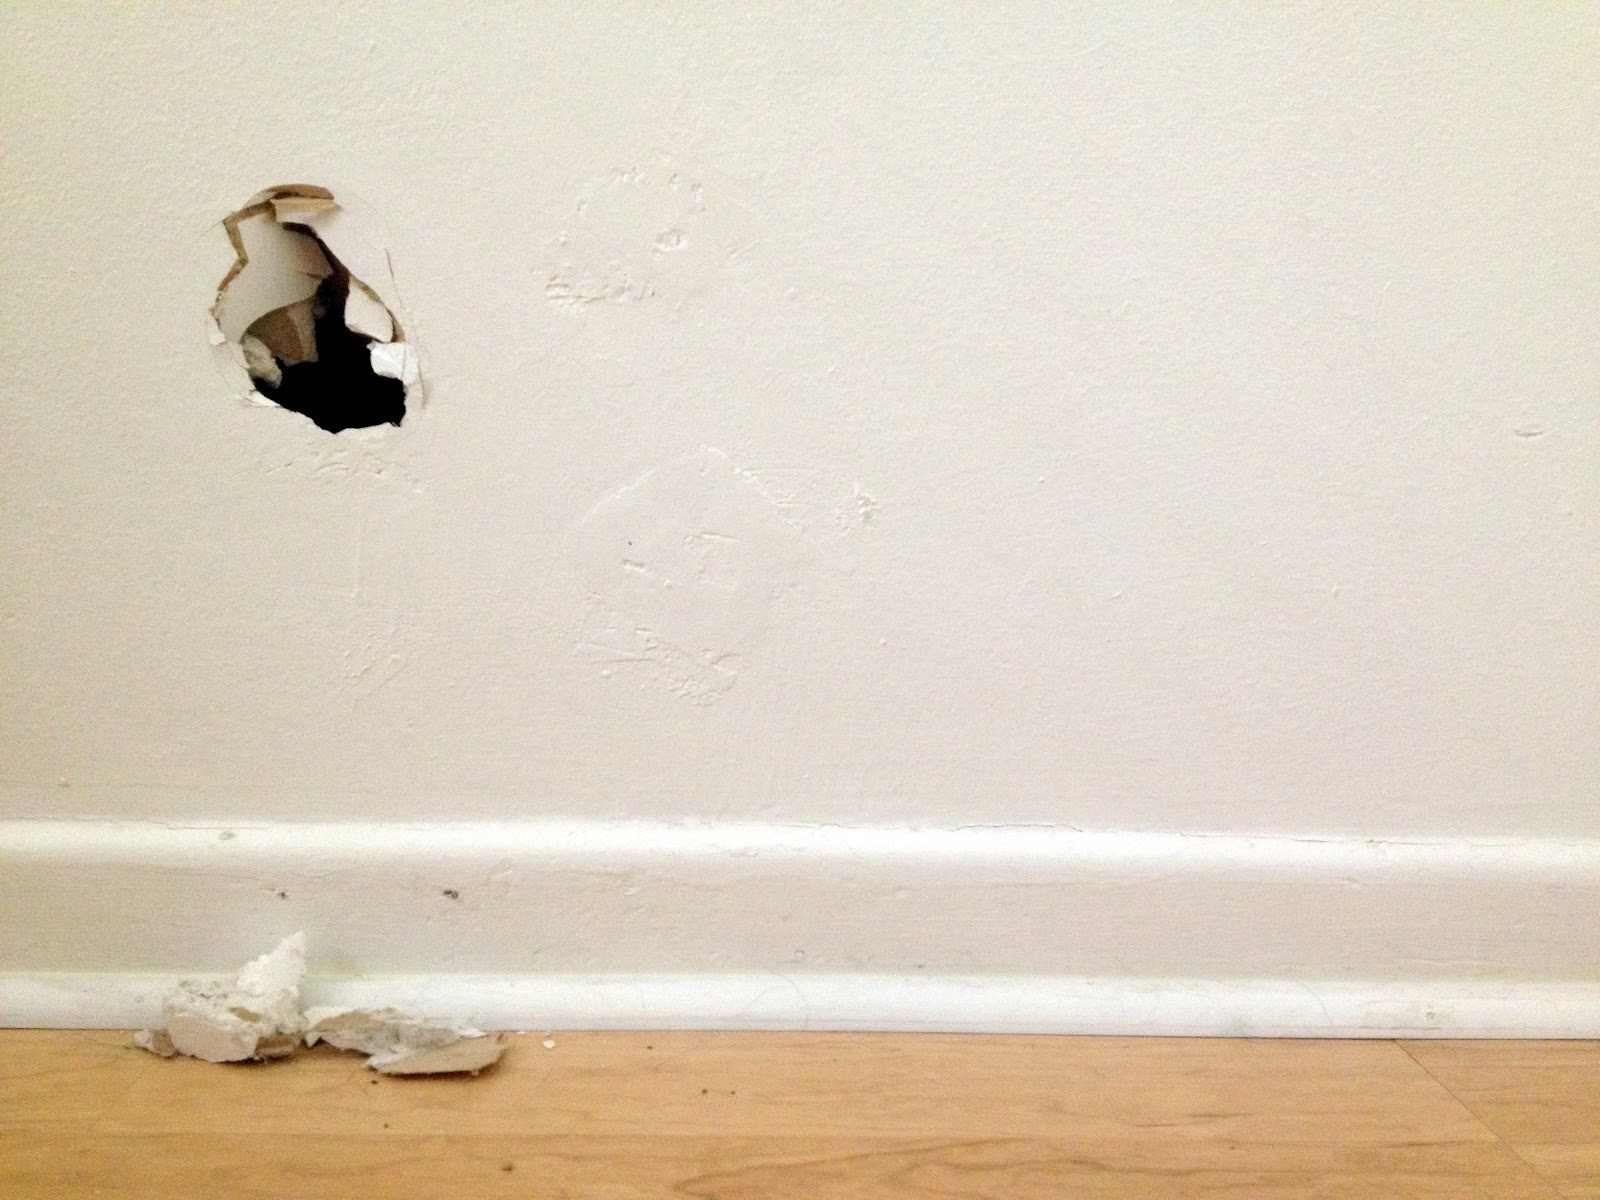 how to fix a hole in drywall 3 methods hirerush blog. Black Bedroom Furniture Sets. Home Design Ideas